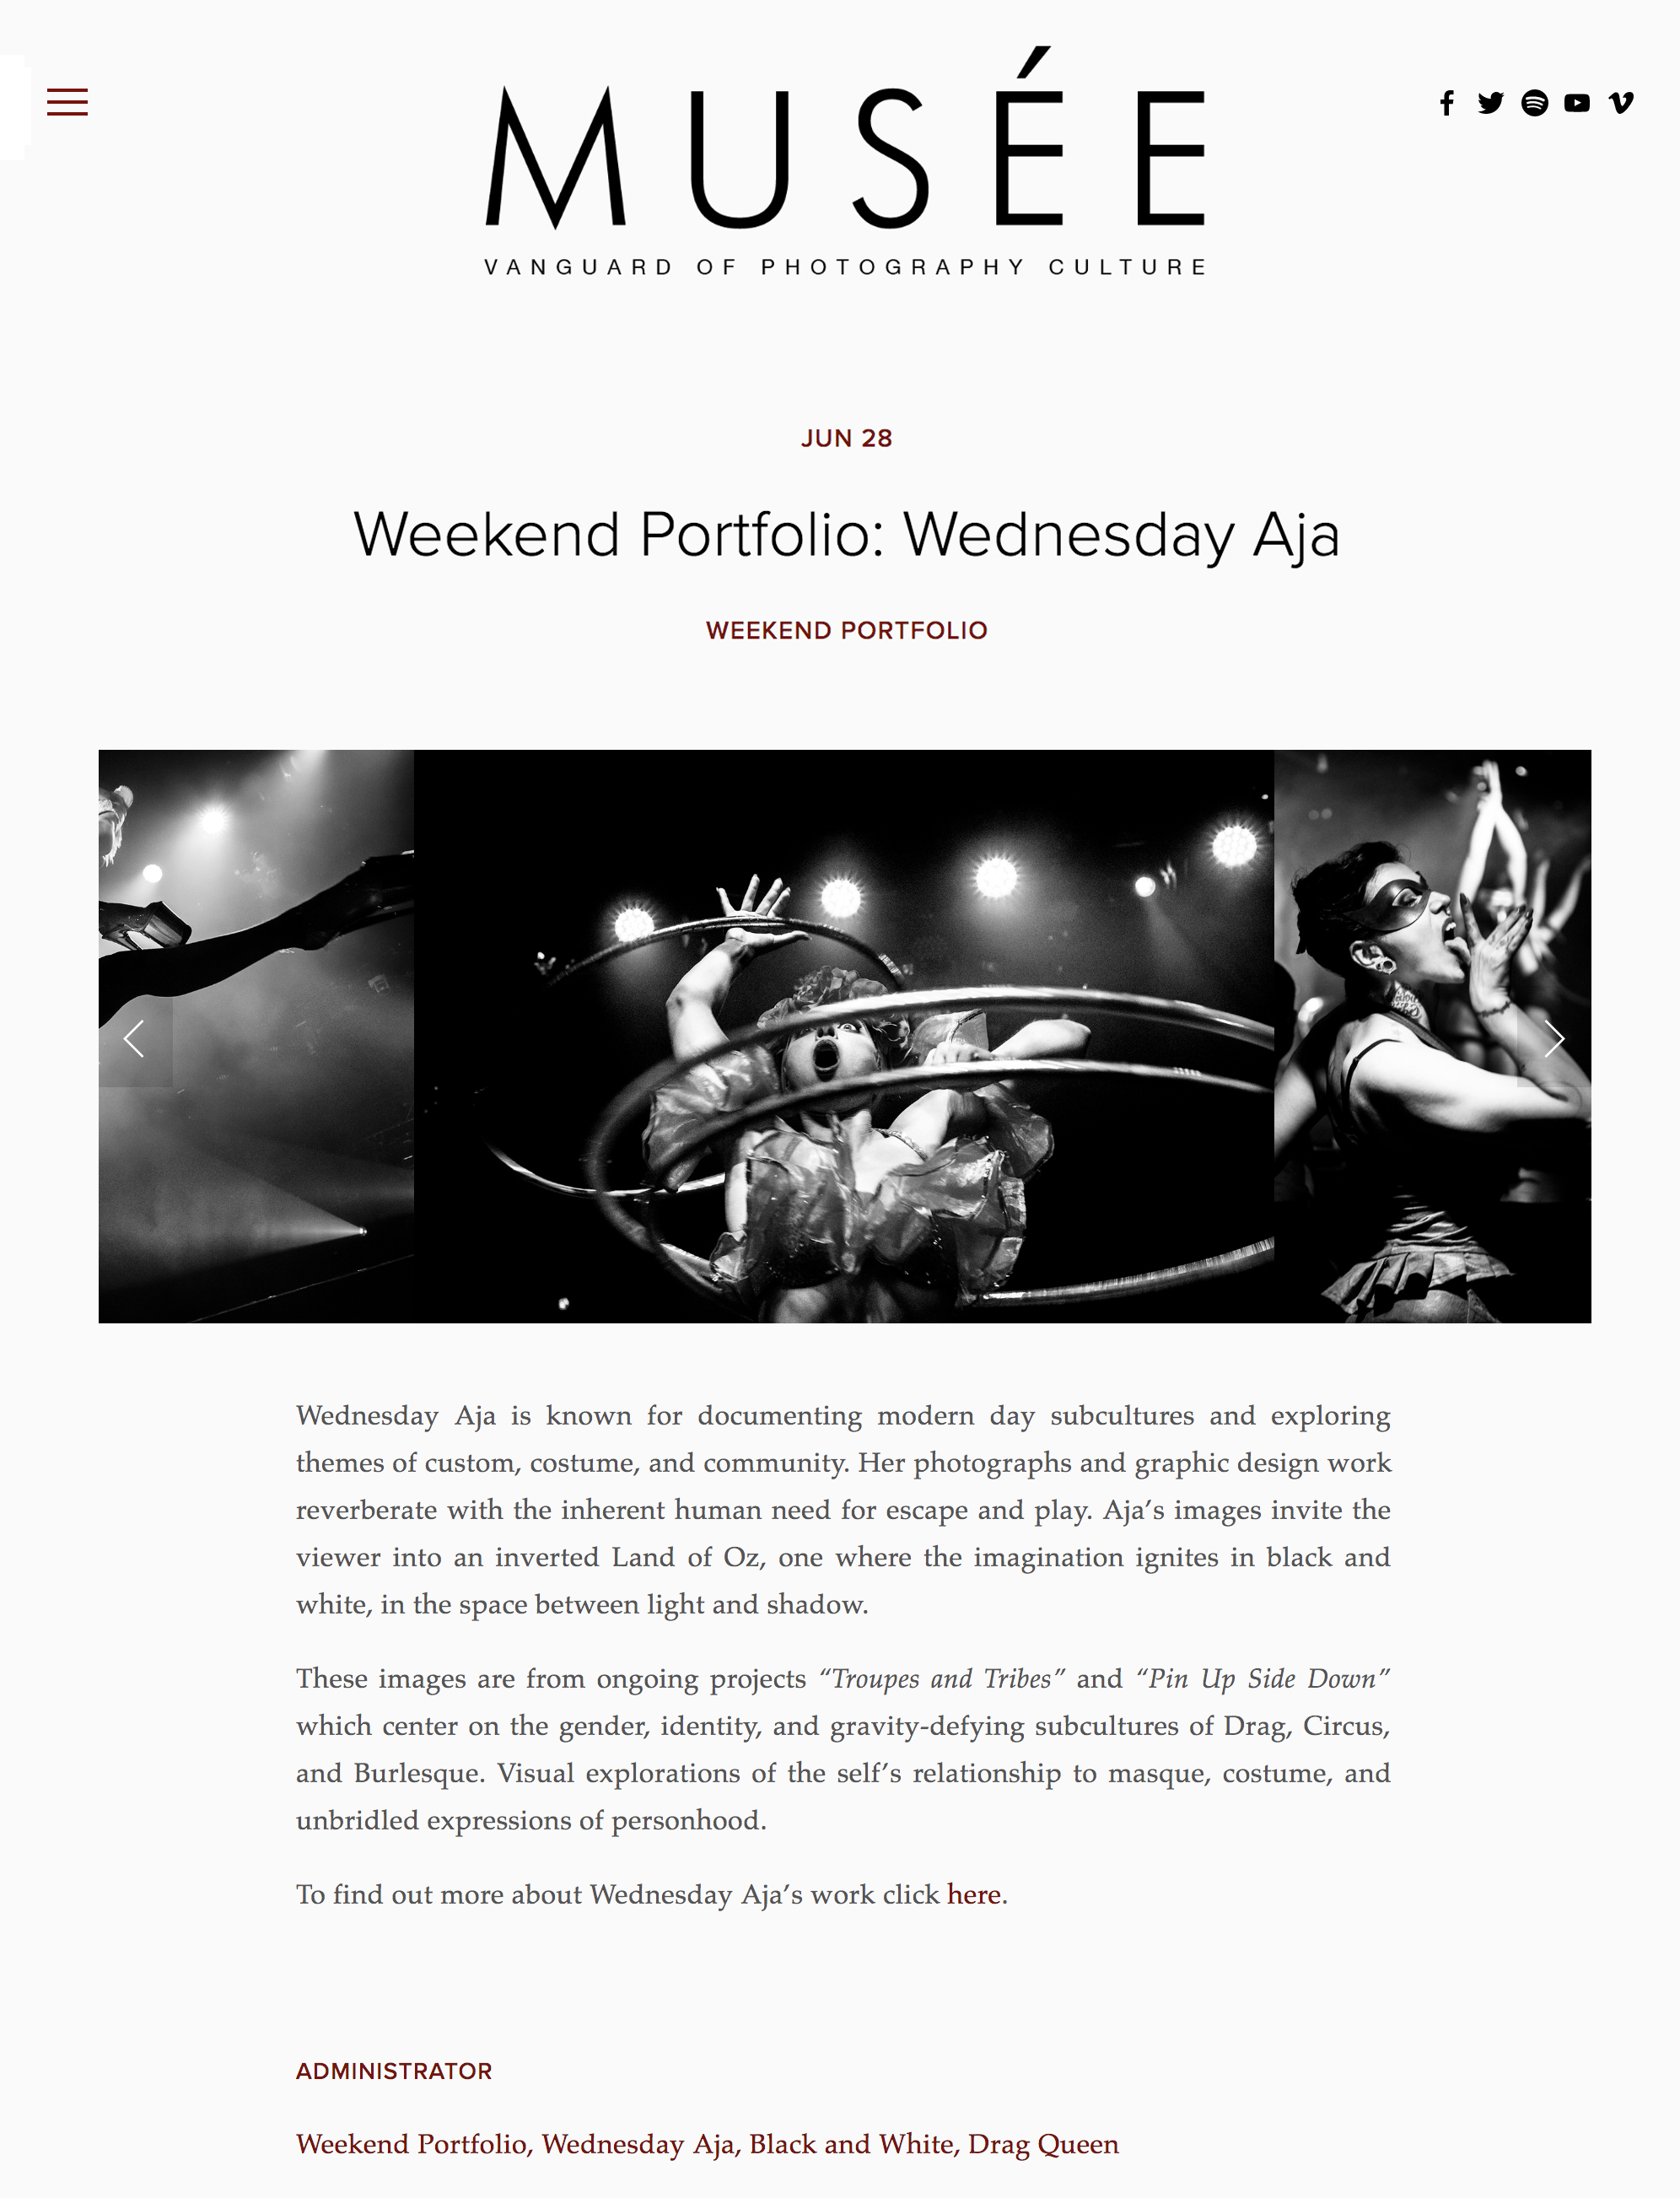 MuseeMagazine-Weekend-portfolio-WEDNESDAY-AJA-web.jpg